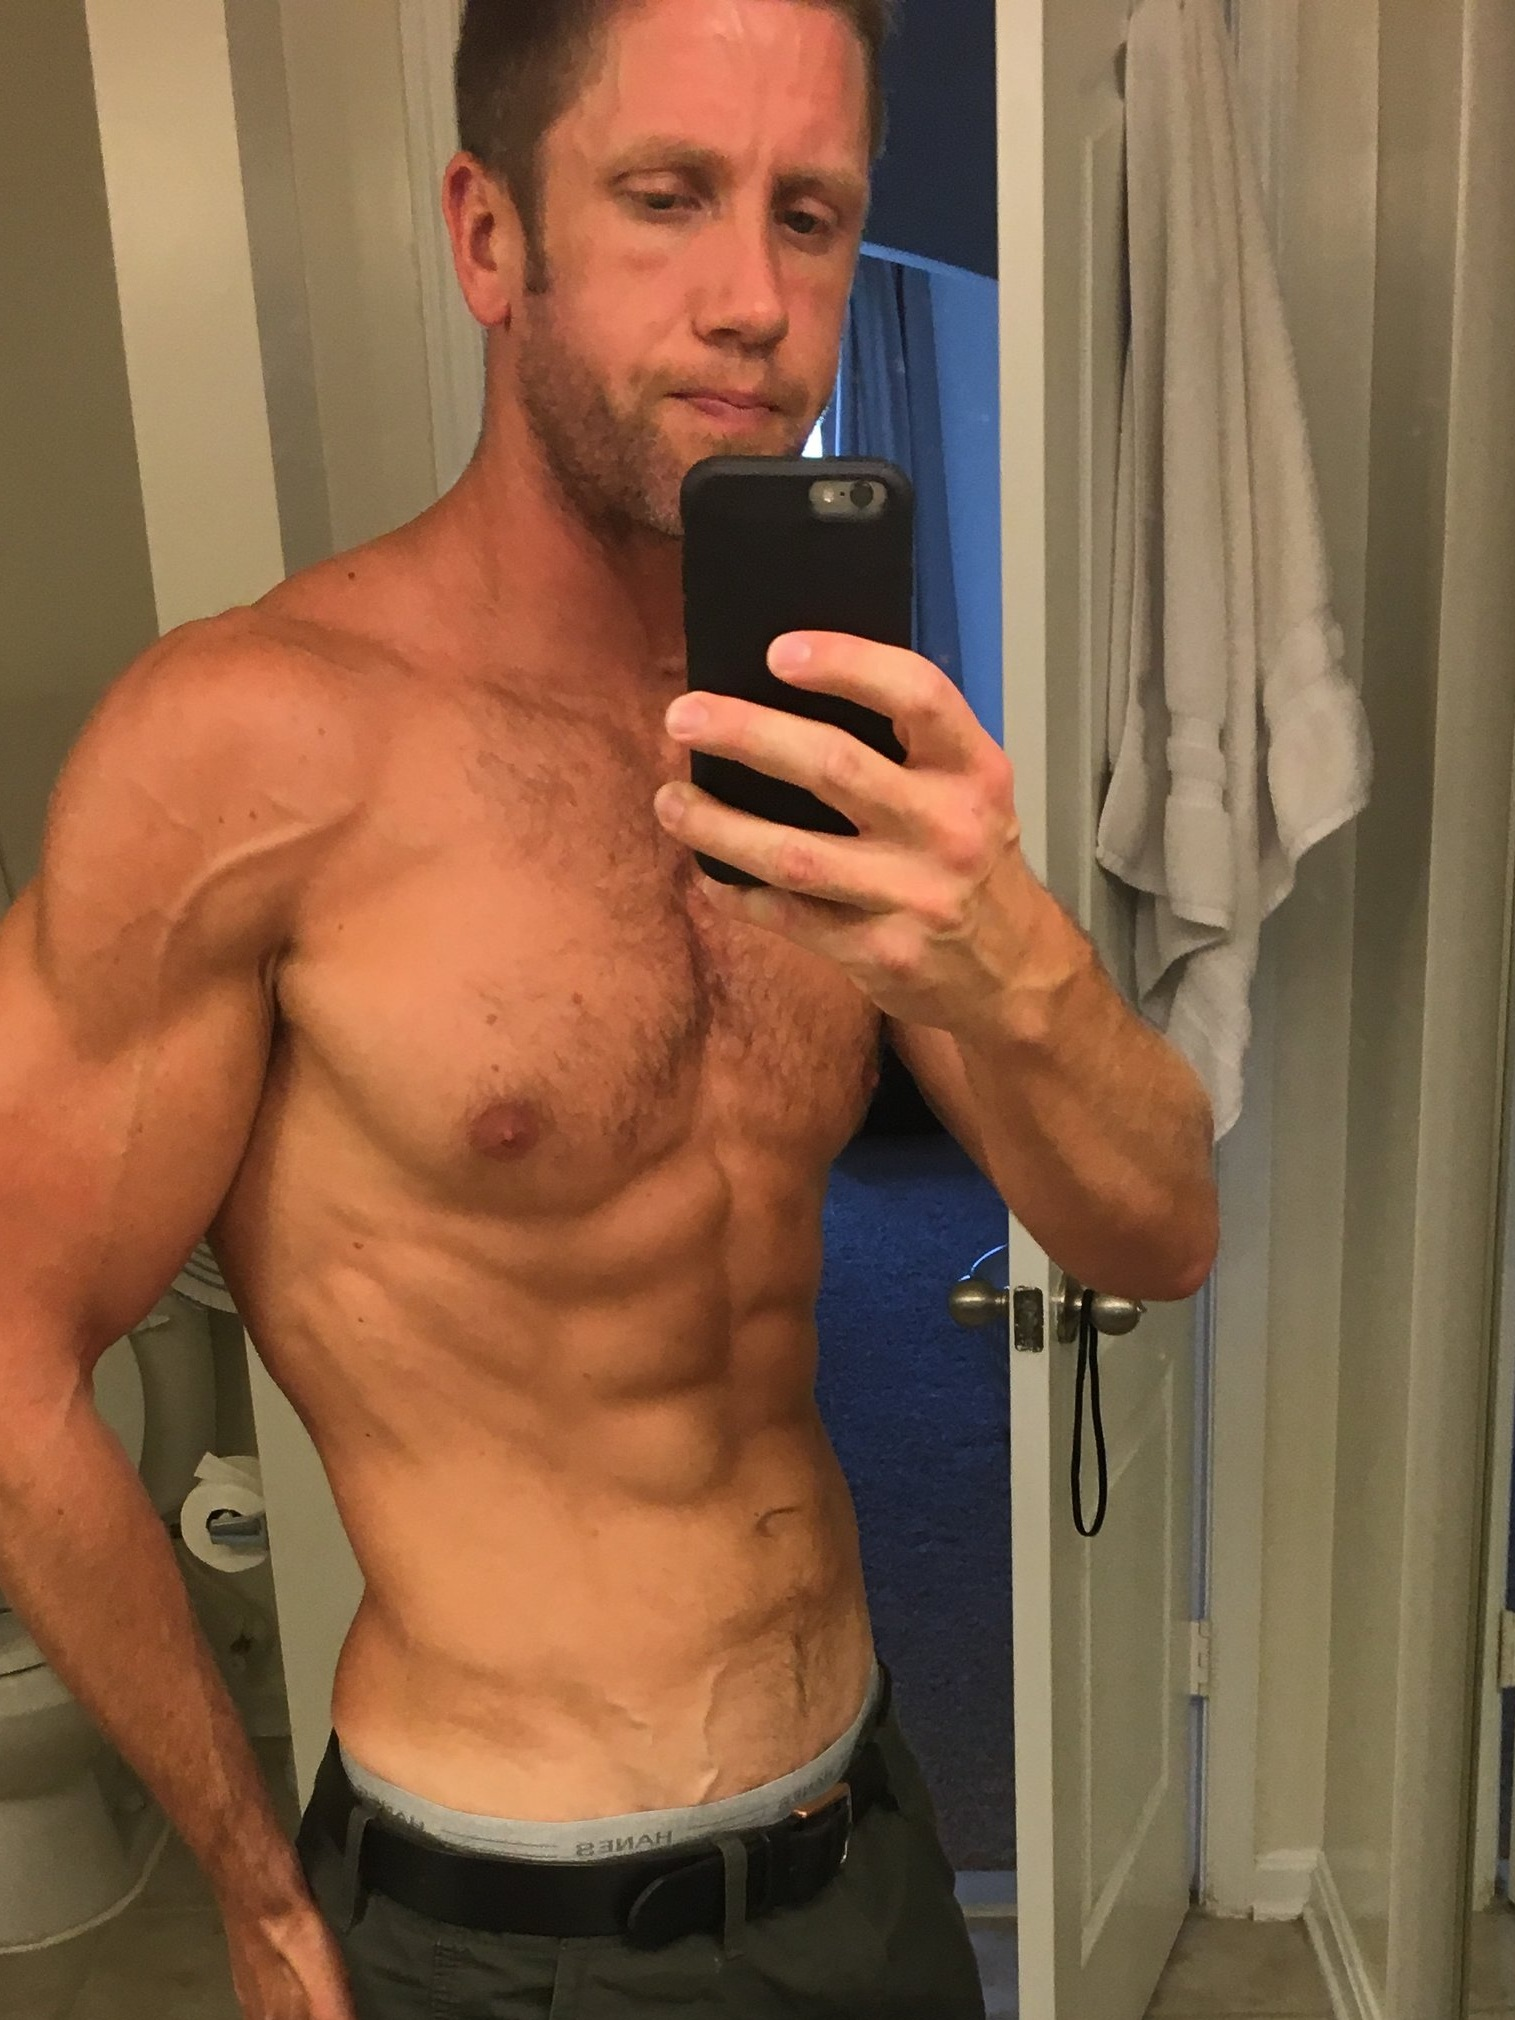 *Bathroom selfie alert (this was hard for me to post as selfie's aren't my style. It made sense in the context of this post, so against my better judgement here it is)   * This was me flexing in the mirror a couple years ago after blitzing my abs with a similar protocol for 8 weeks. While great for the 6-pack, this program does nothing to cure a man's inability to put the toilet seat down after use.